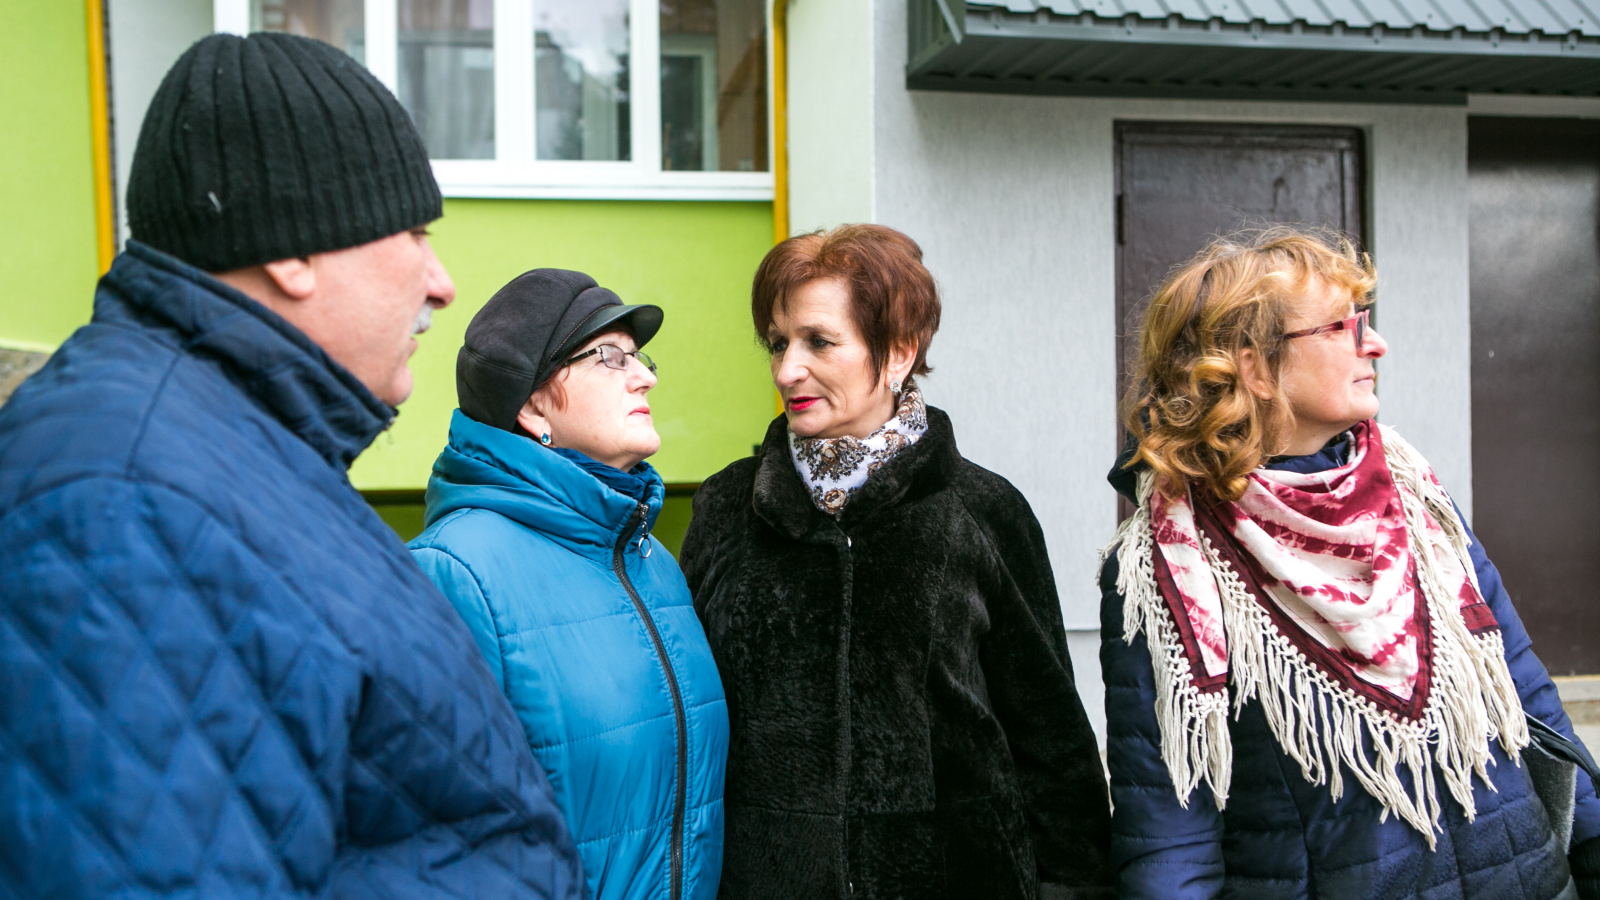 Halyna Djulai, Halyna Kohut and residents of 'Lypy 2'